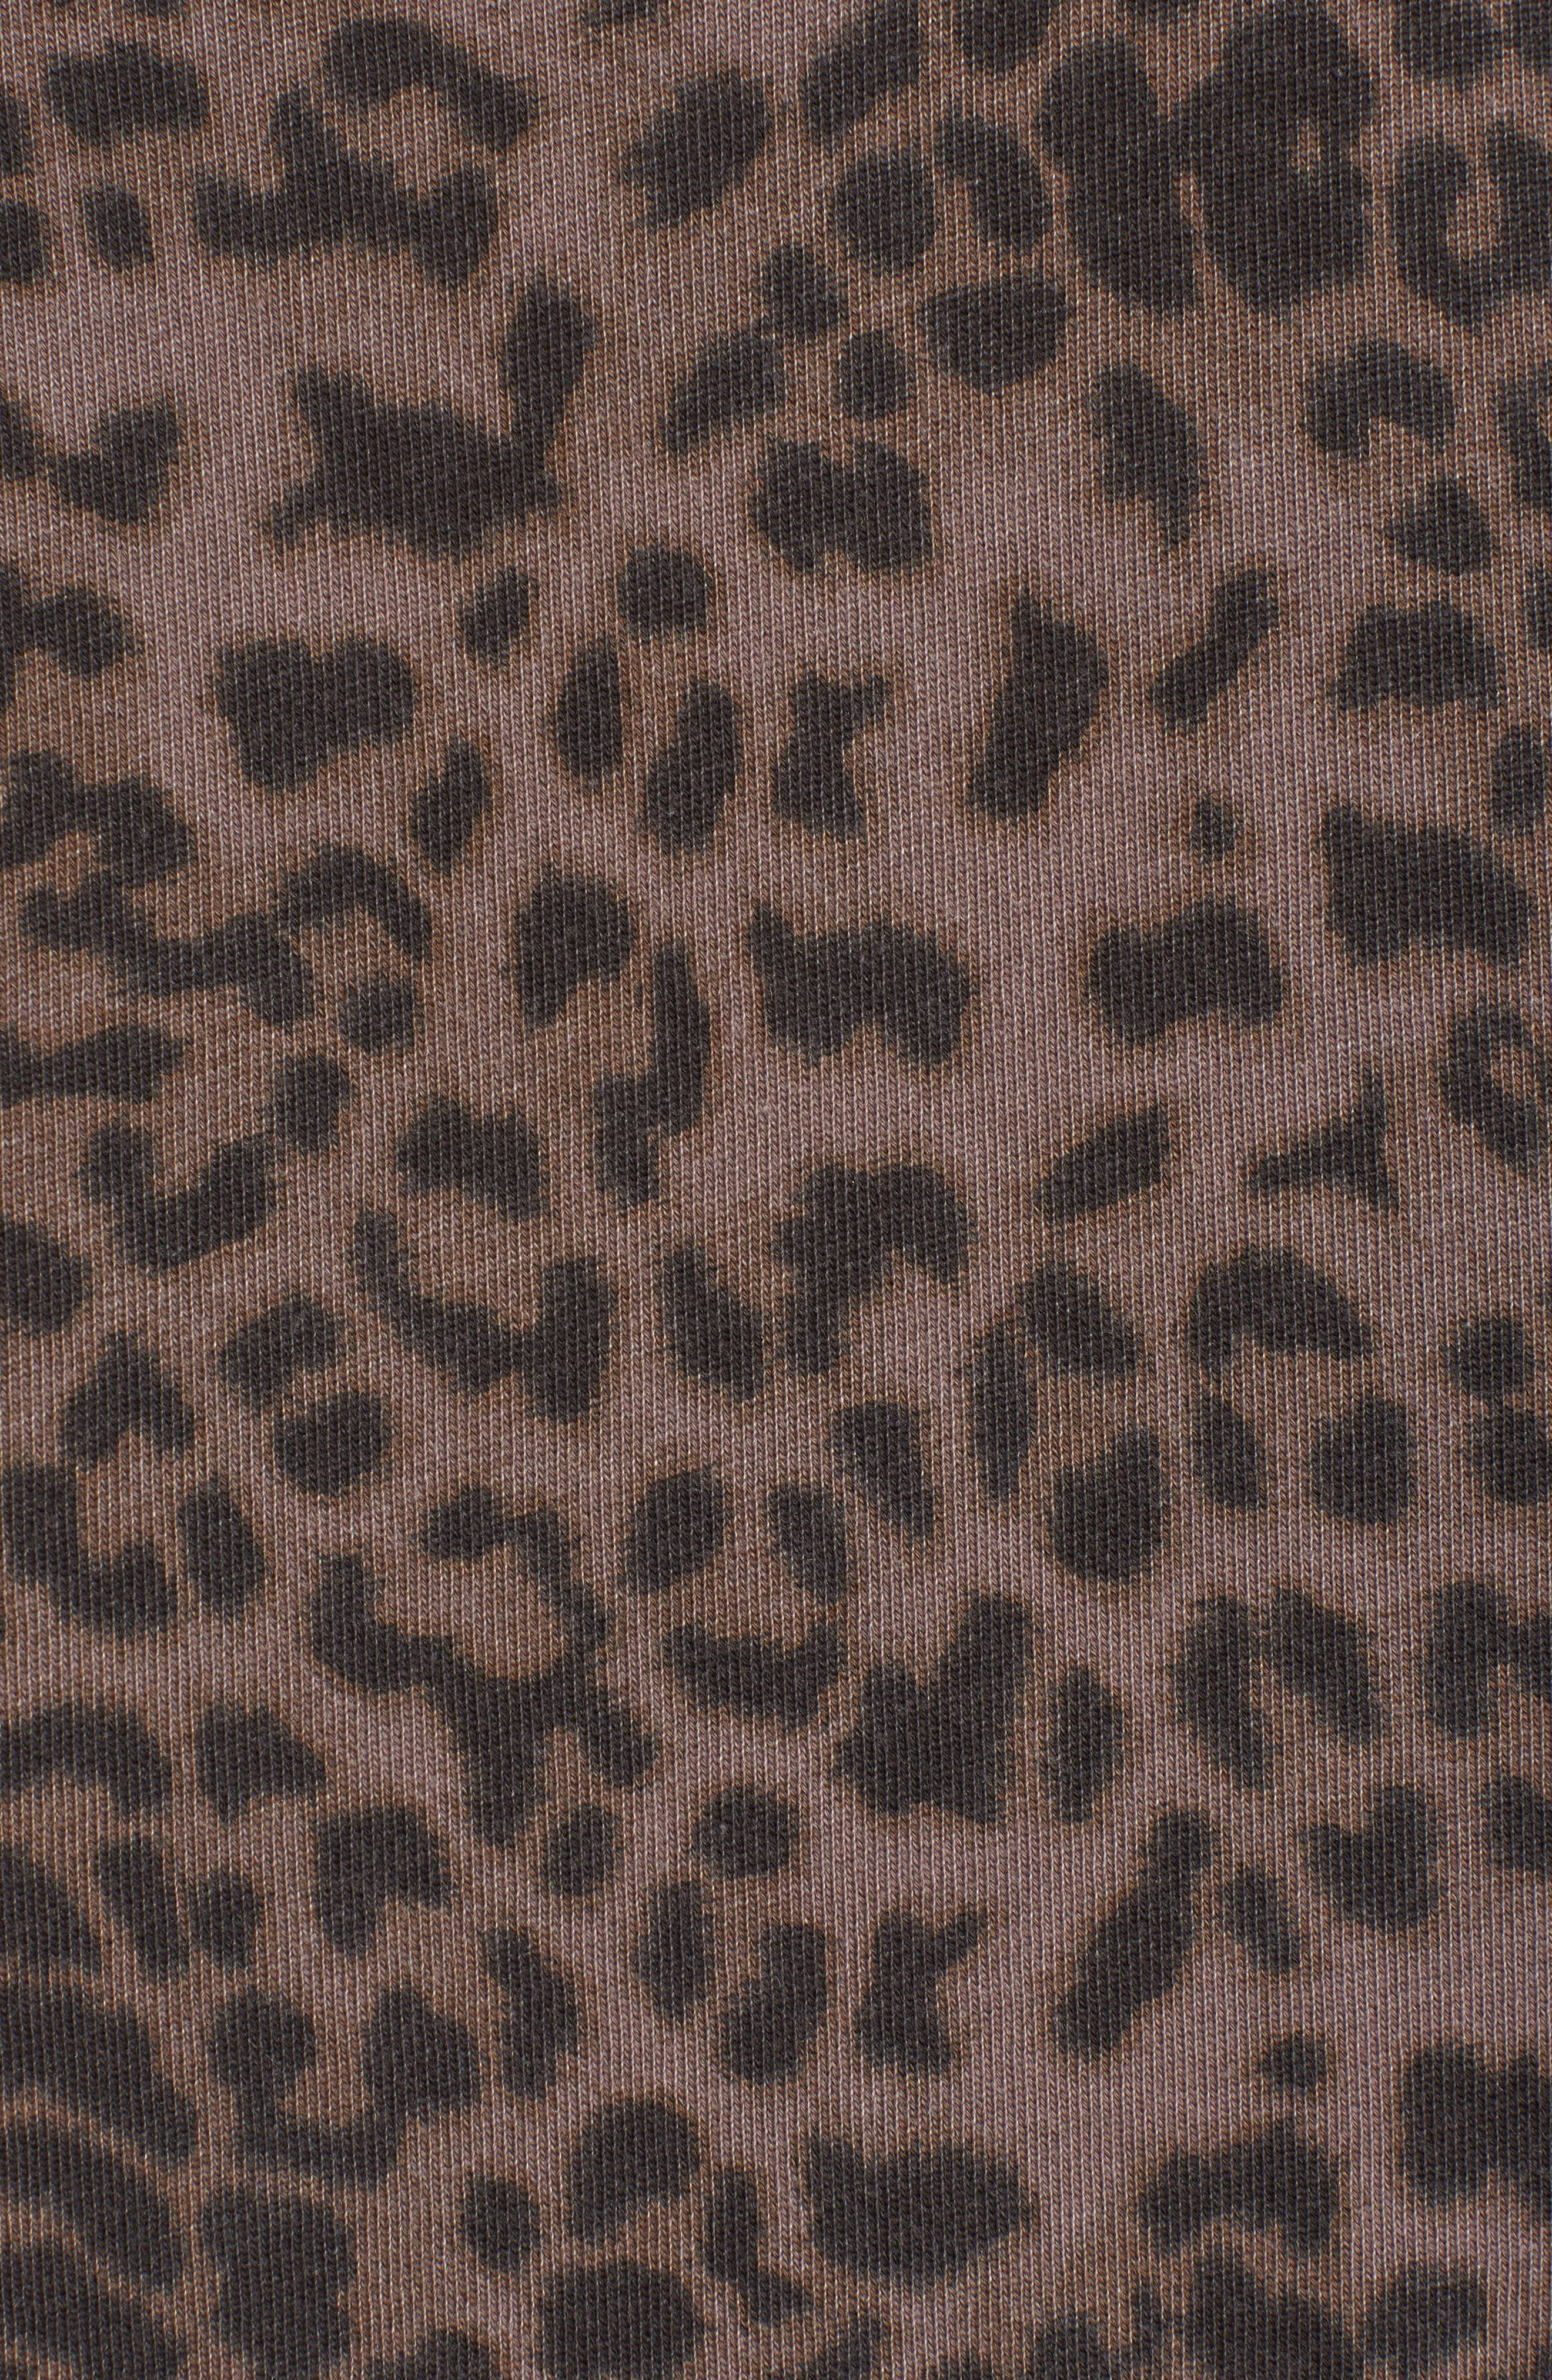 Leopard Spot Crop Hoodie,                             Alternate thumbnail 5, color,                             200